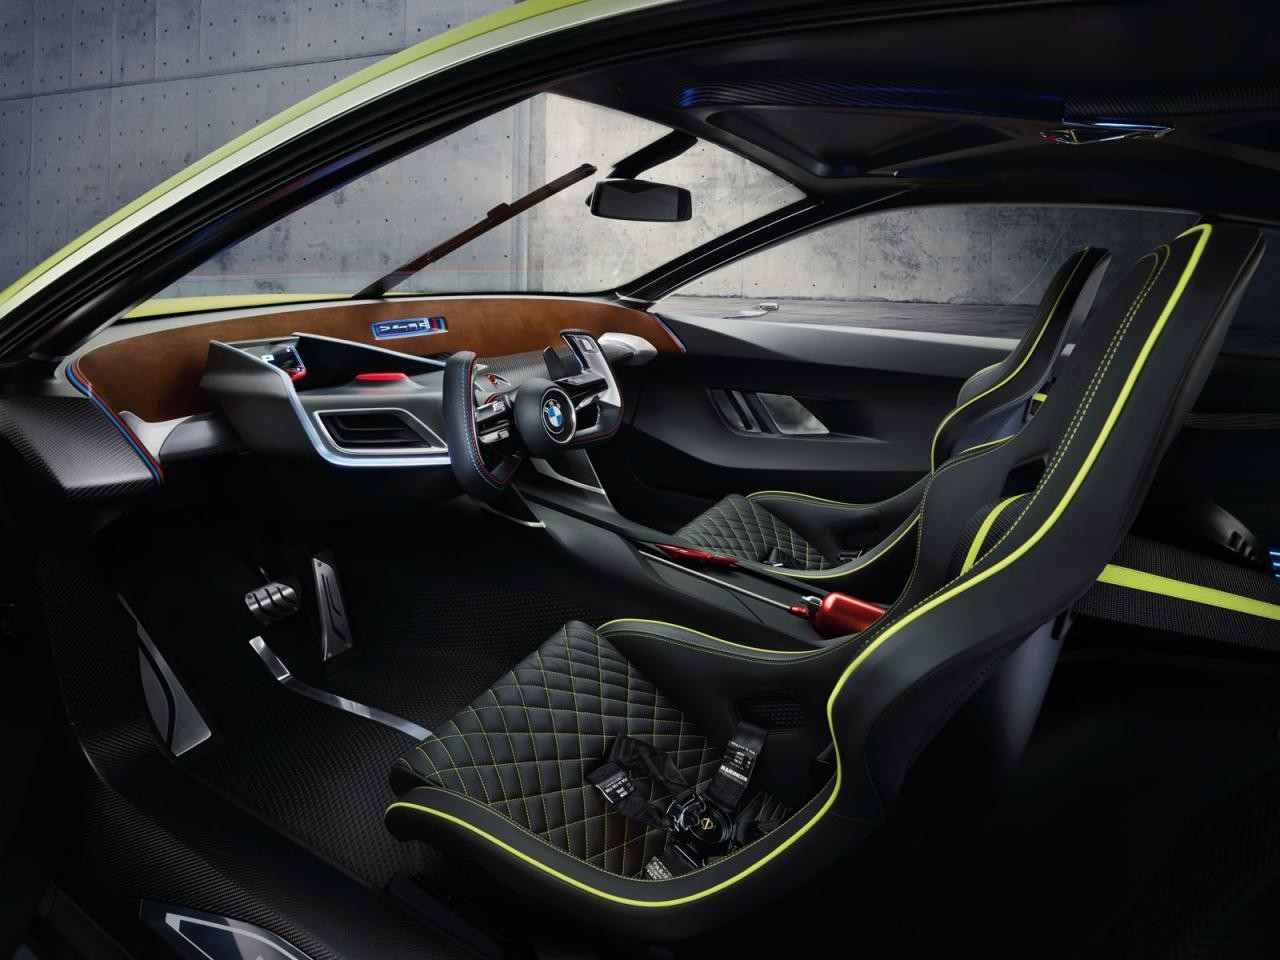 bmw 3 0 csl hommage concept unveiled at concorso d 39 eleganza performancedrive. Black Bedroom Furniture Sets. Home Design Ideas